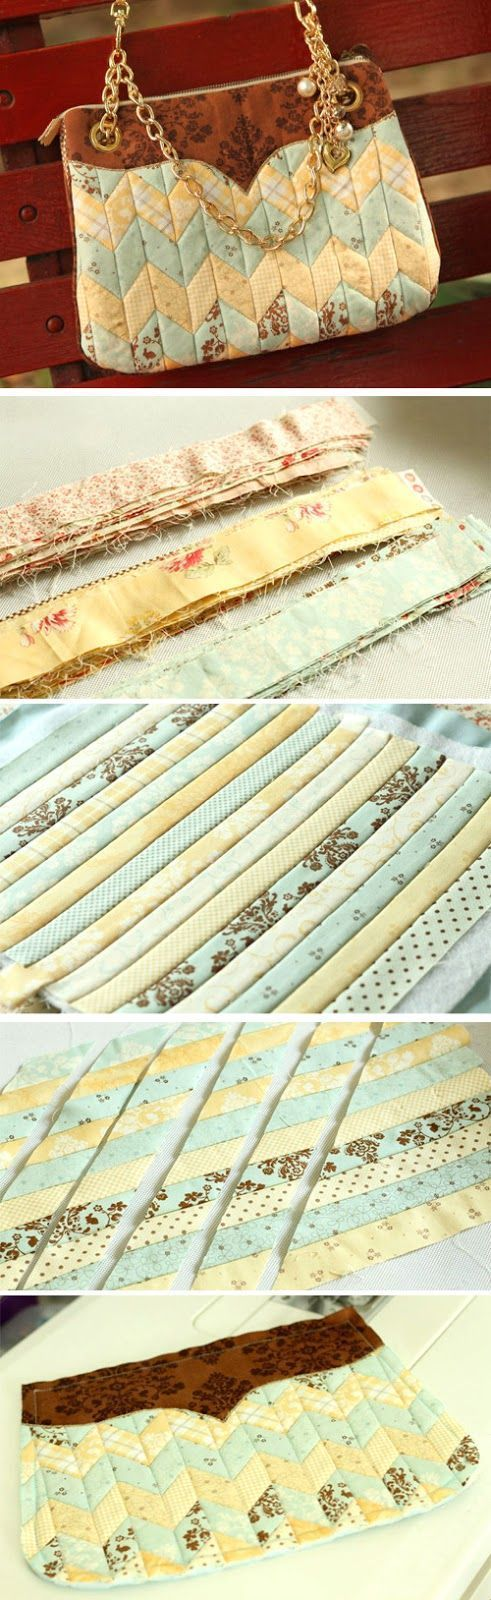 Patchwork Bag. Photo Sewing Step by step Process. http://www.handmadiya.com/2016/02/bag-of-fabric-strips.html